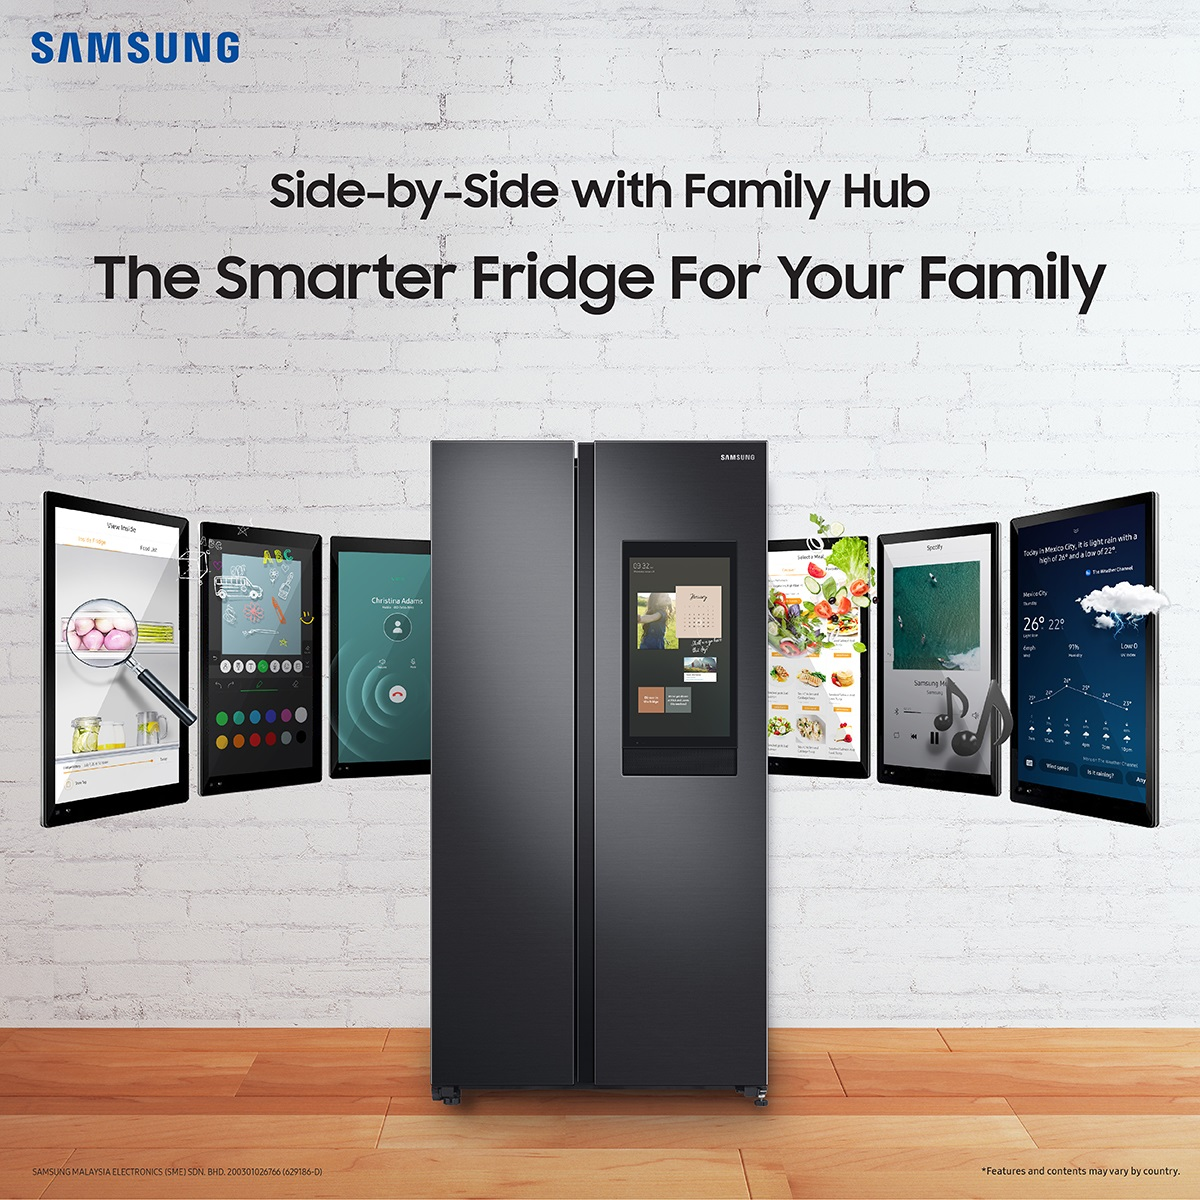 Samsung Family Hub Introduces a Whole New Way of Convenient, Connected Living